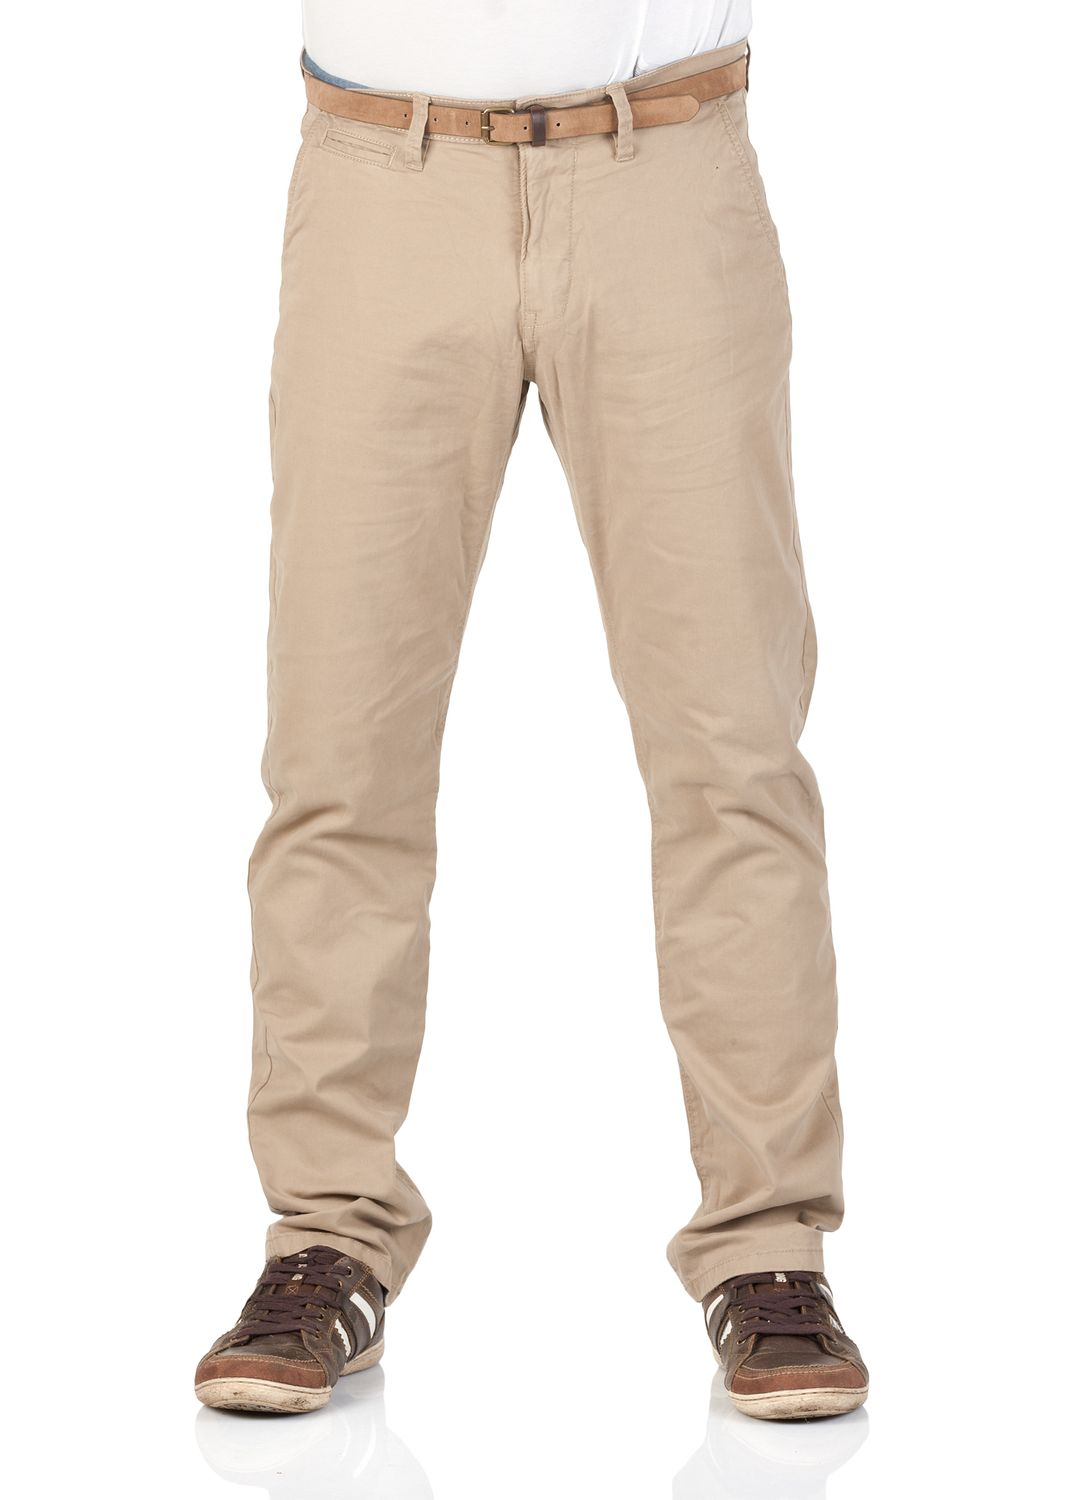 093632ee0029 ... Tom Tailor Herren Chino Hose Travis mit Gürtel - Slim Fit - Beige -  Chinchilla